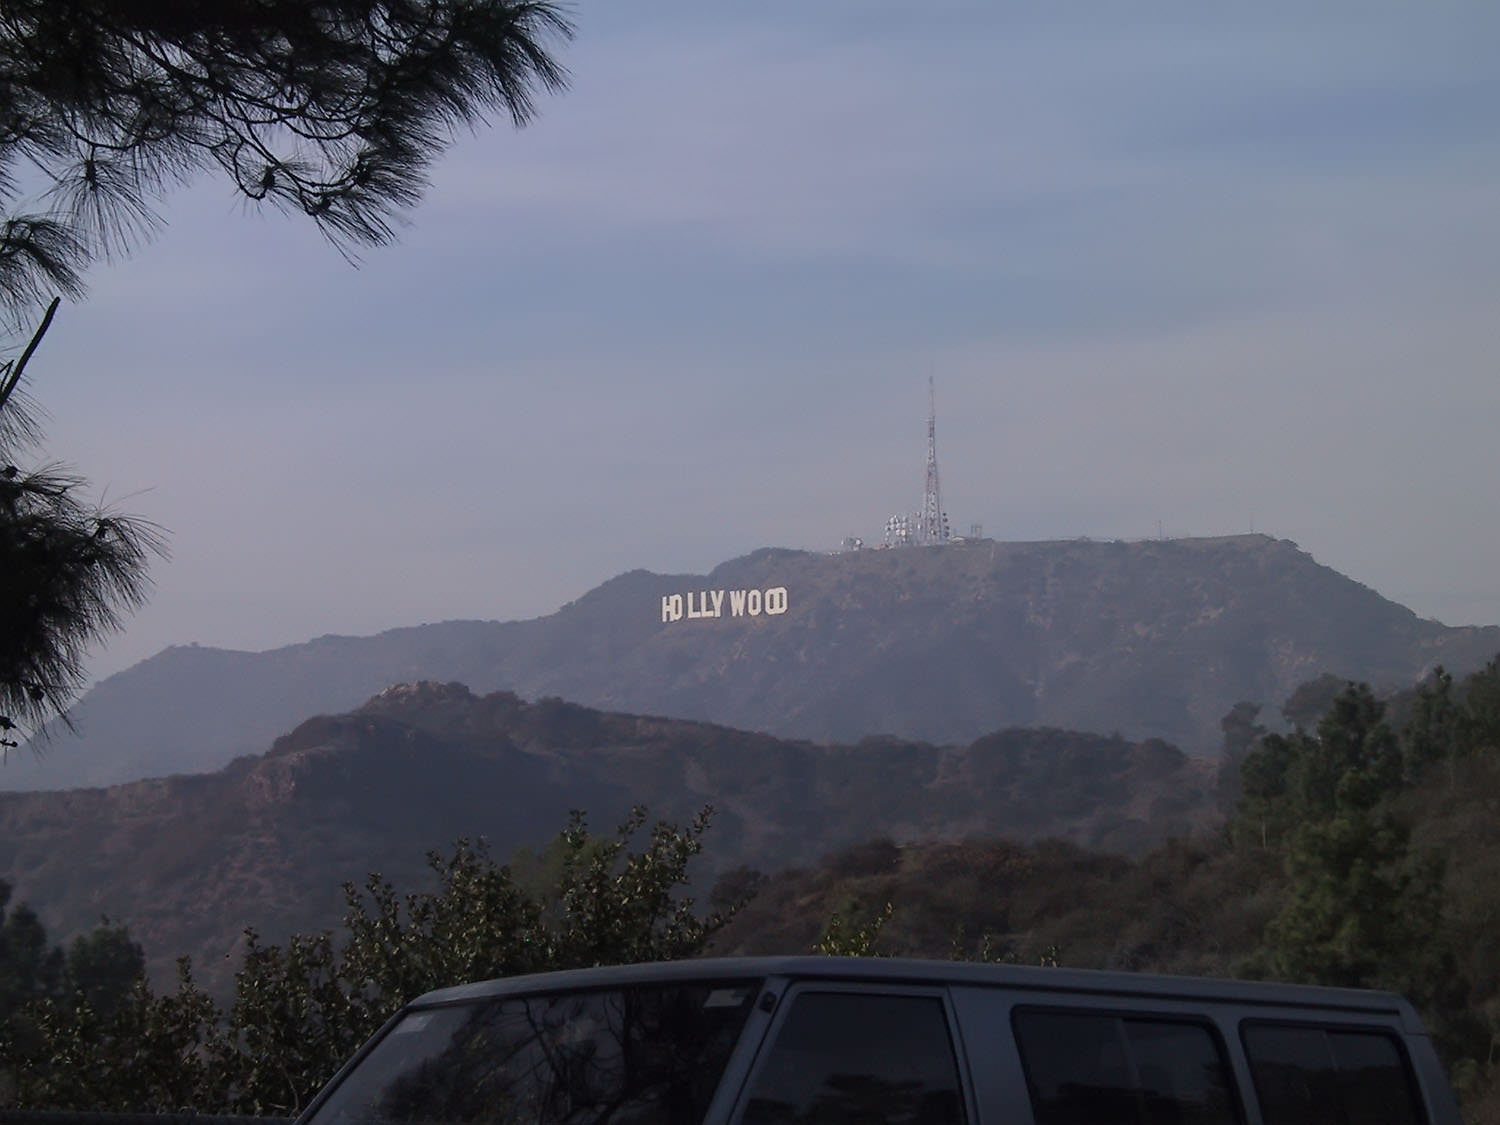 The Hollywood sign as seen from near the Griffith Park Observatory.